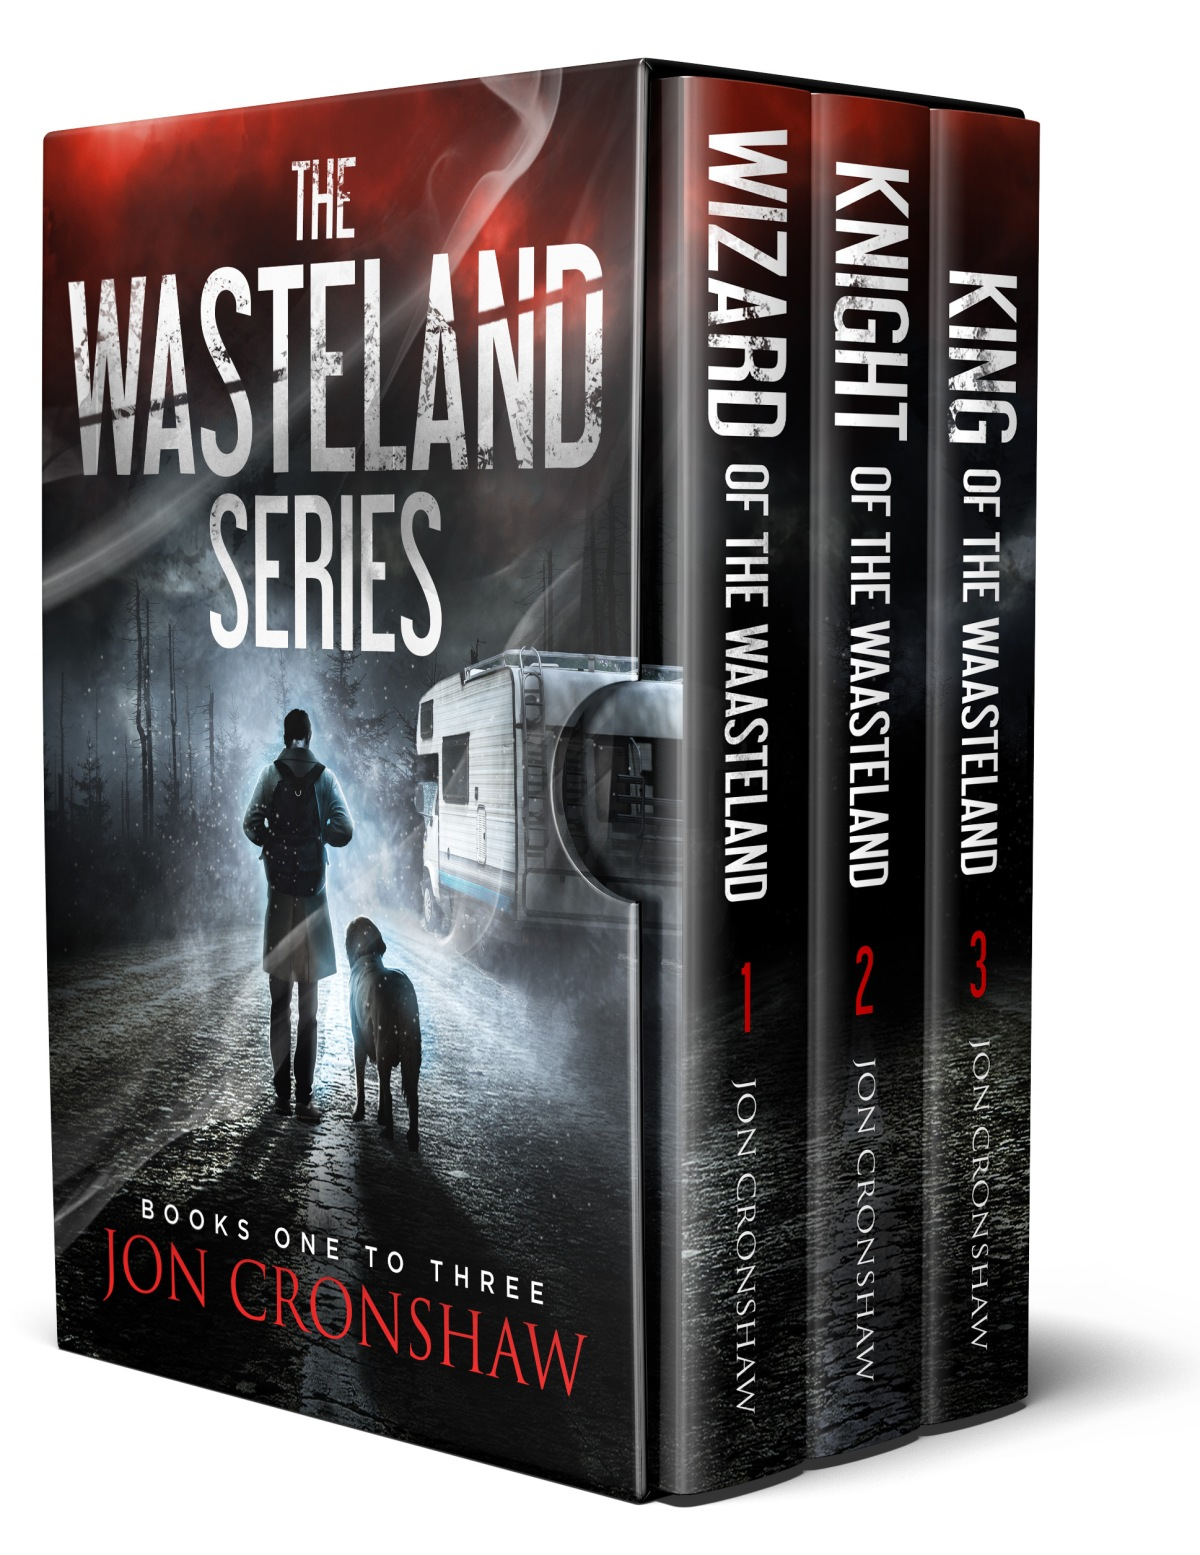 Announcing: The Wasteland Series boxset is now available!